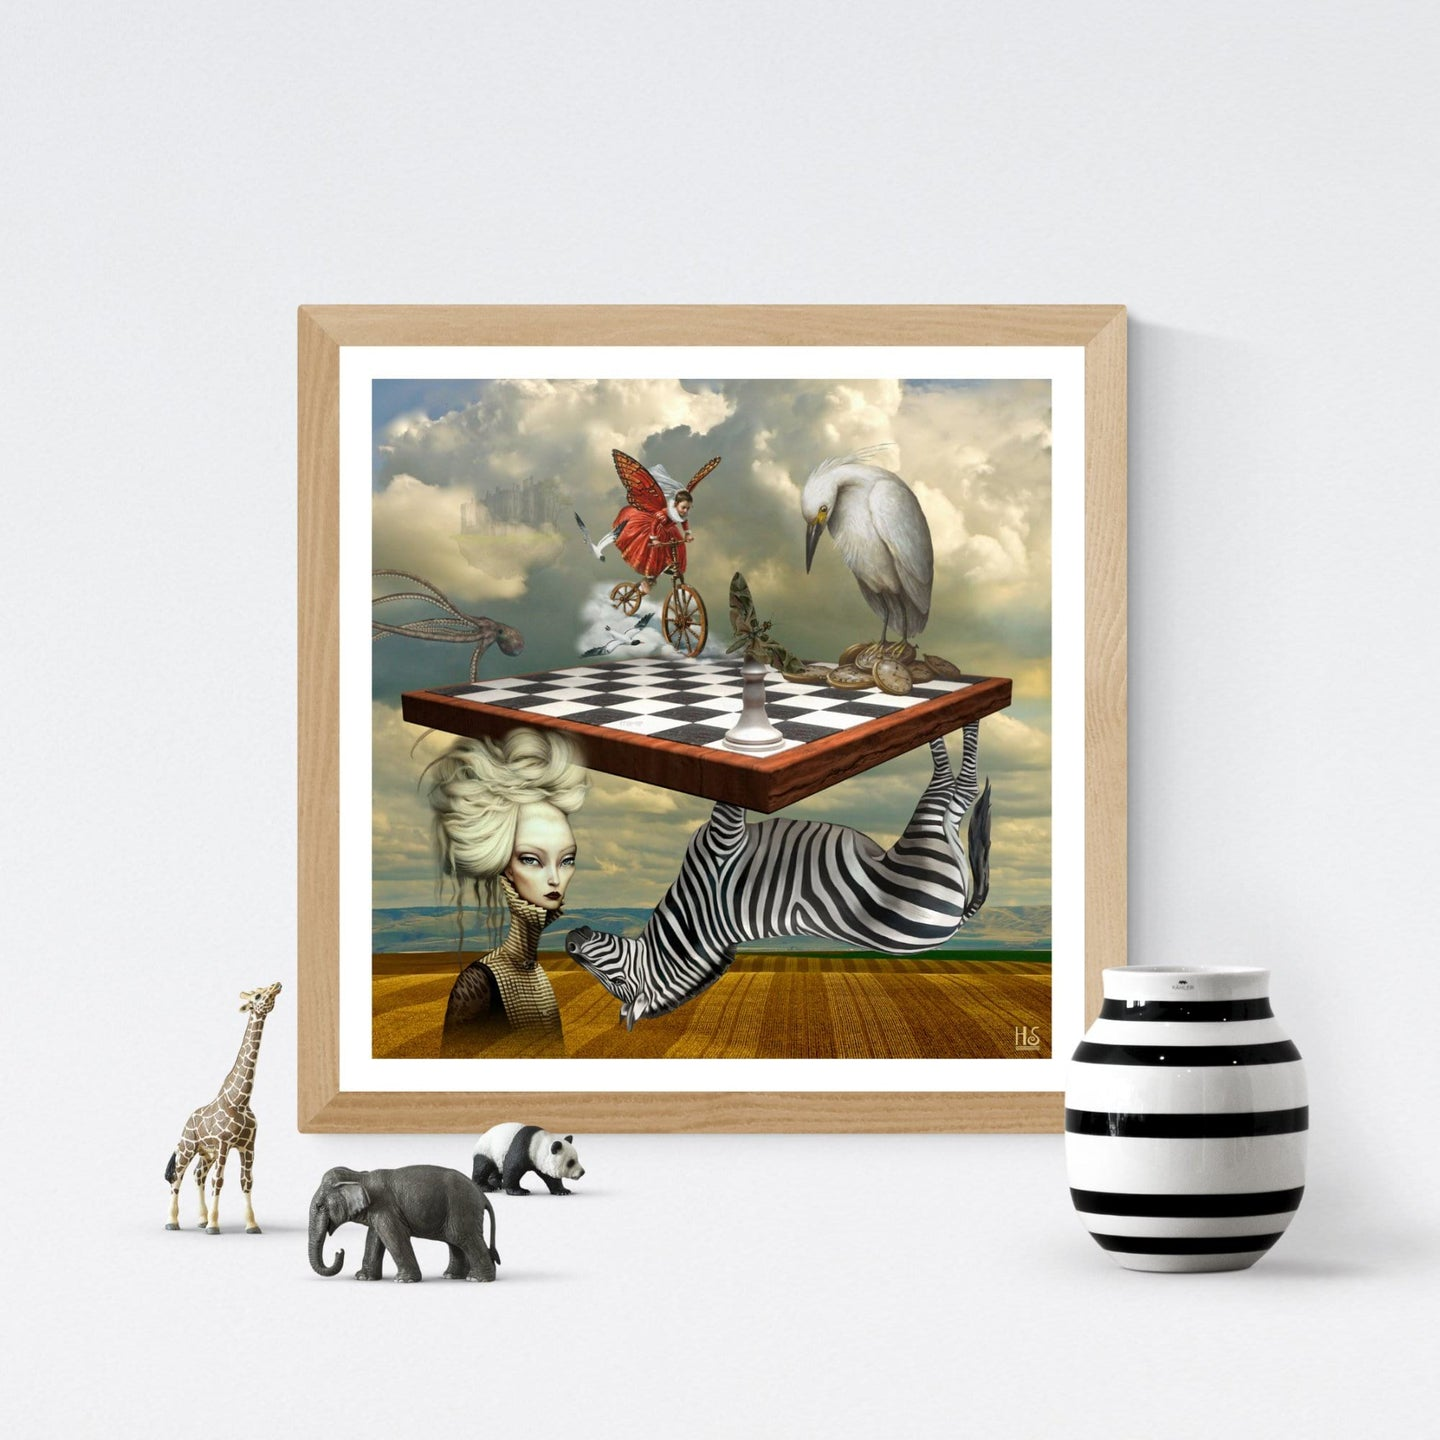 Zebra Upside Down - surrealistisk kunst af Helt Sort